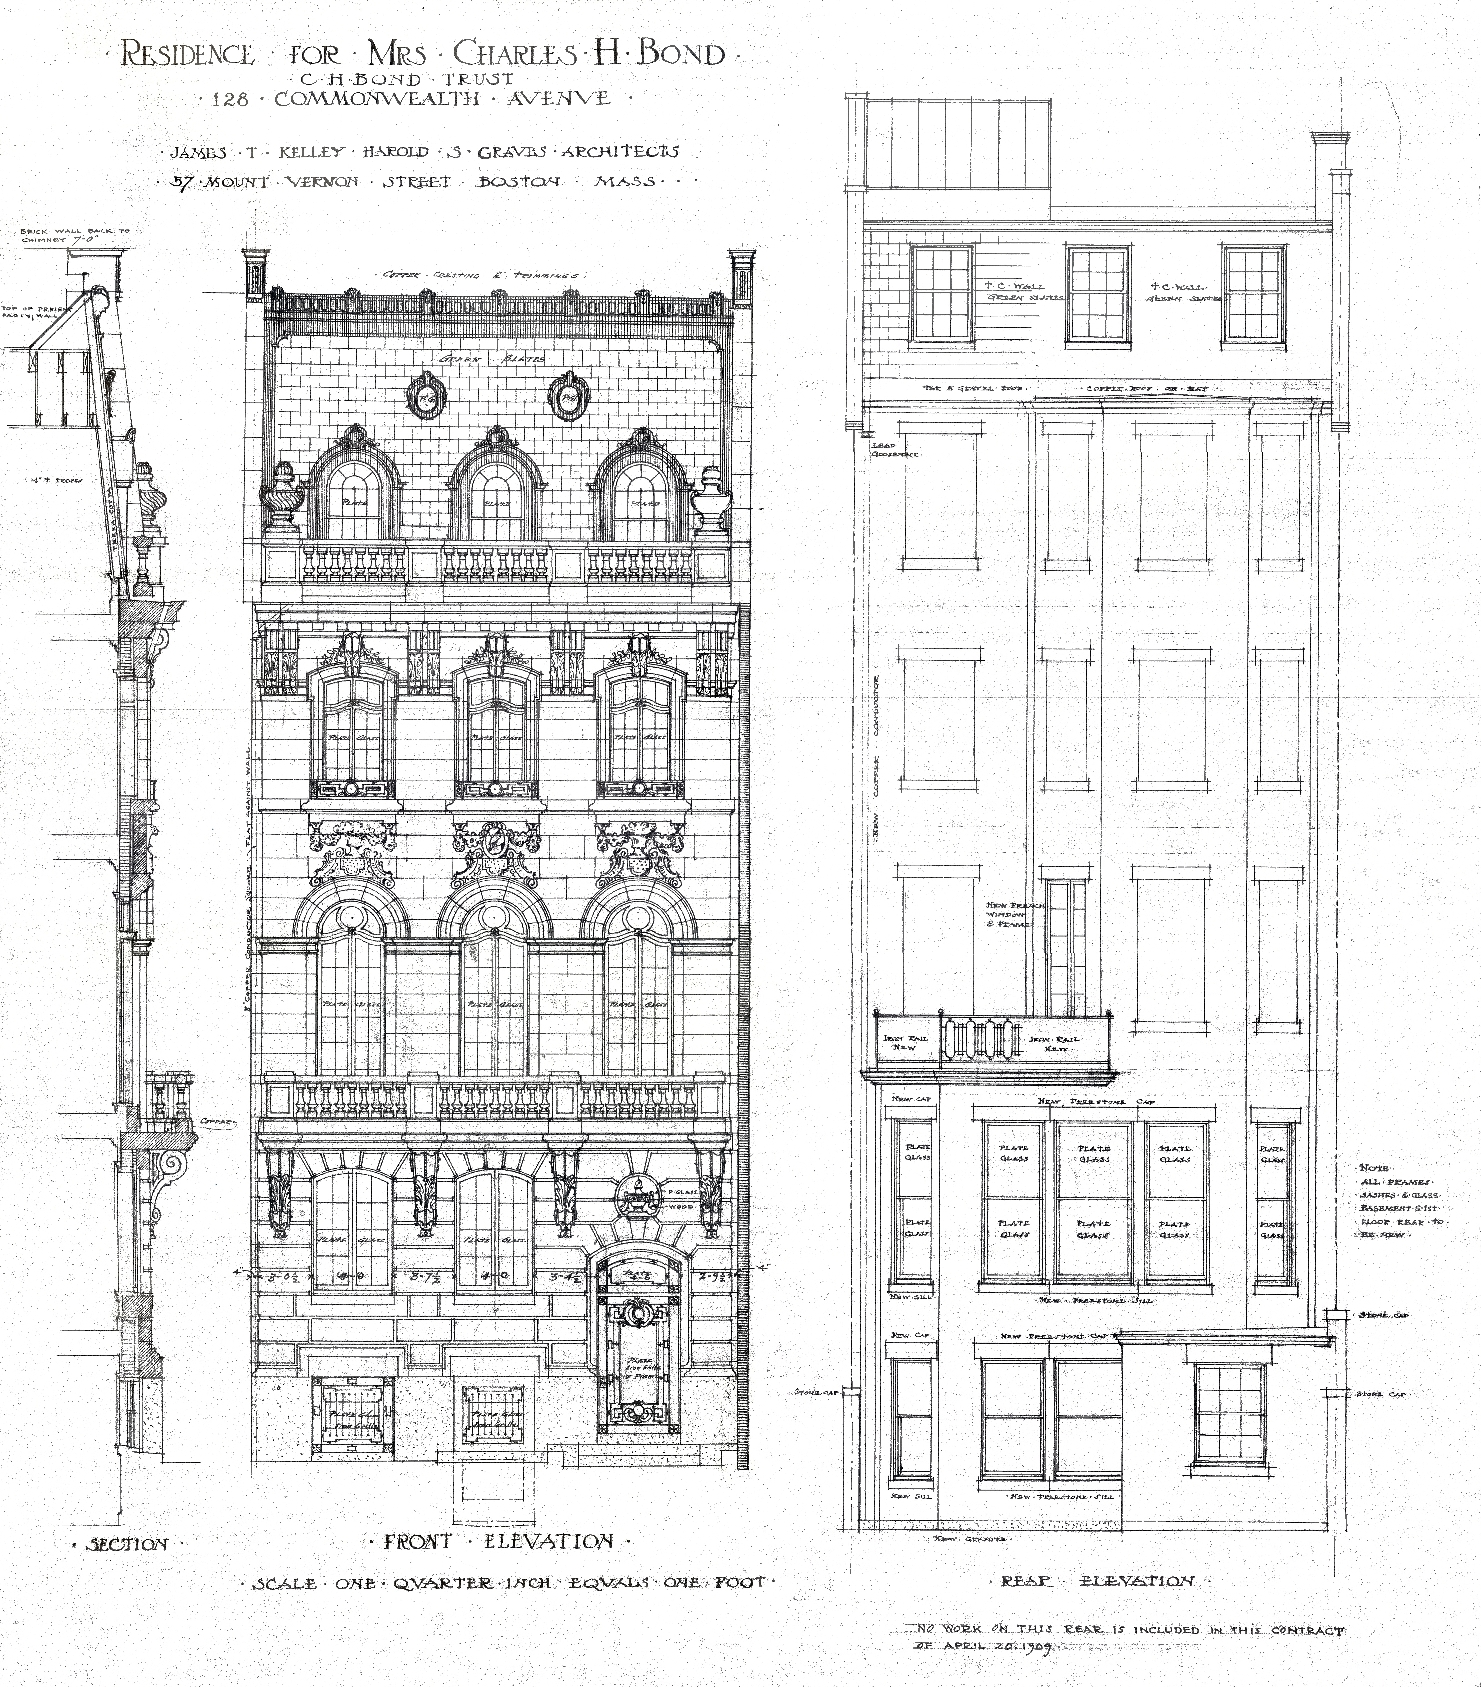 Architectural Plans: 128 Commonwealth